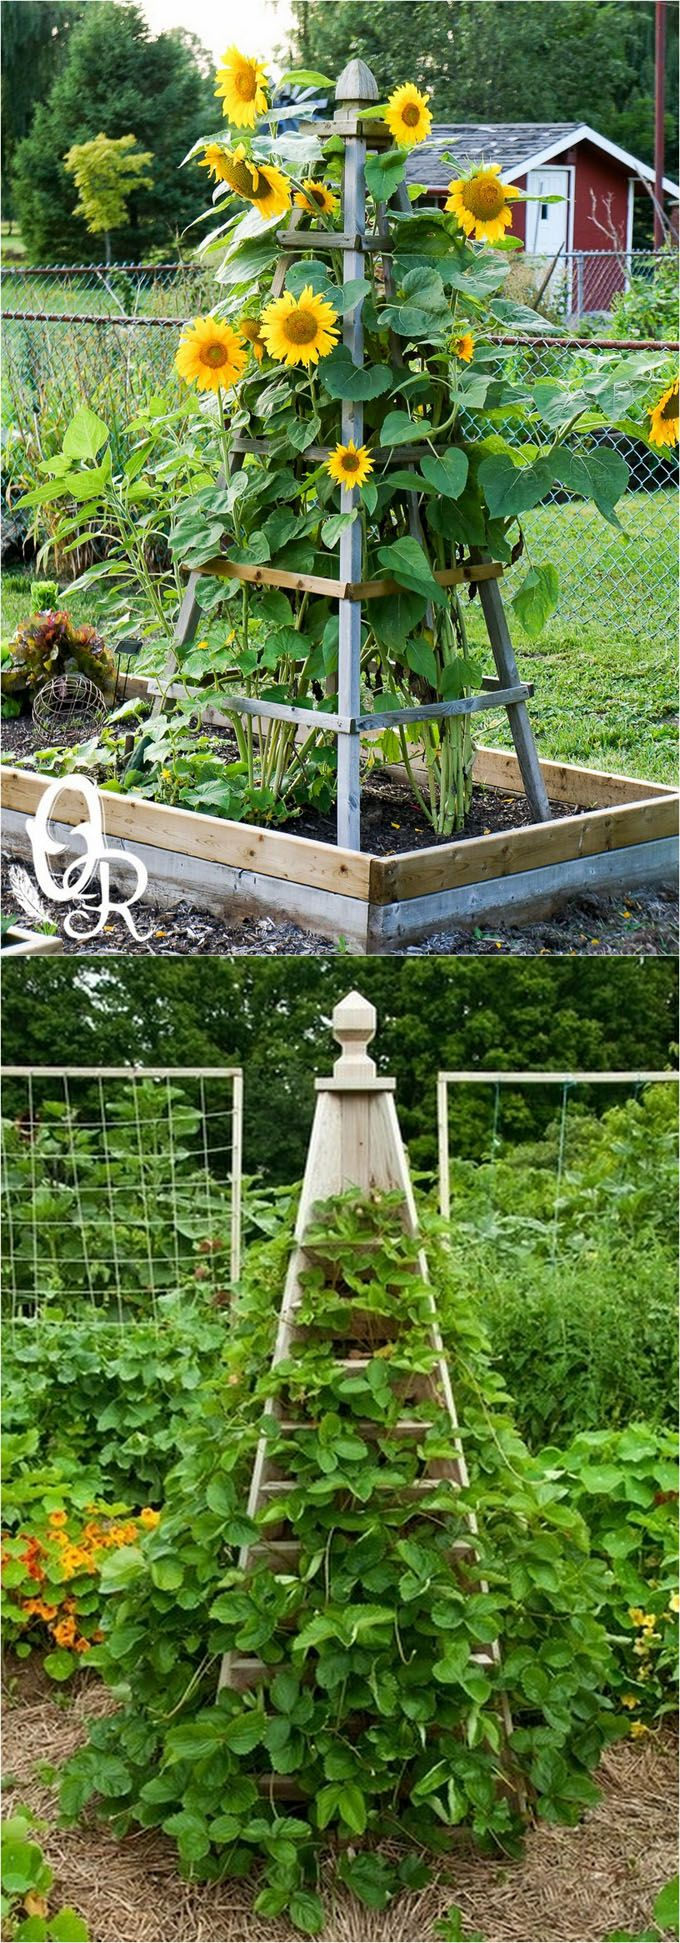 Rummy Easy Diy Garden Trellis Ideas Vertical Growing Structures A Piece Ofrainbow Easy Diy Garden Trellis Ideas Vertical Growing Structures Diy Garden Structures Ideas